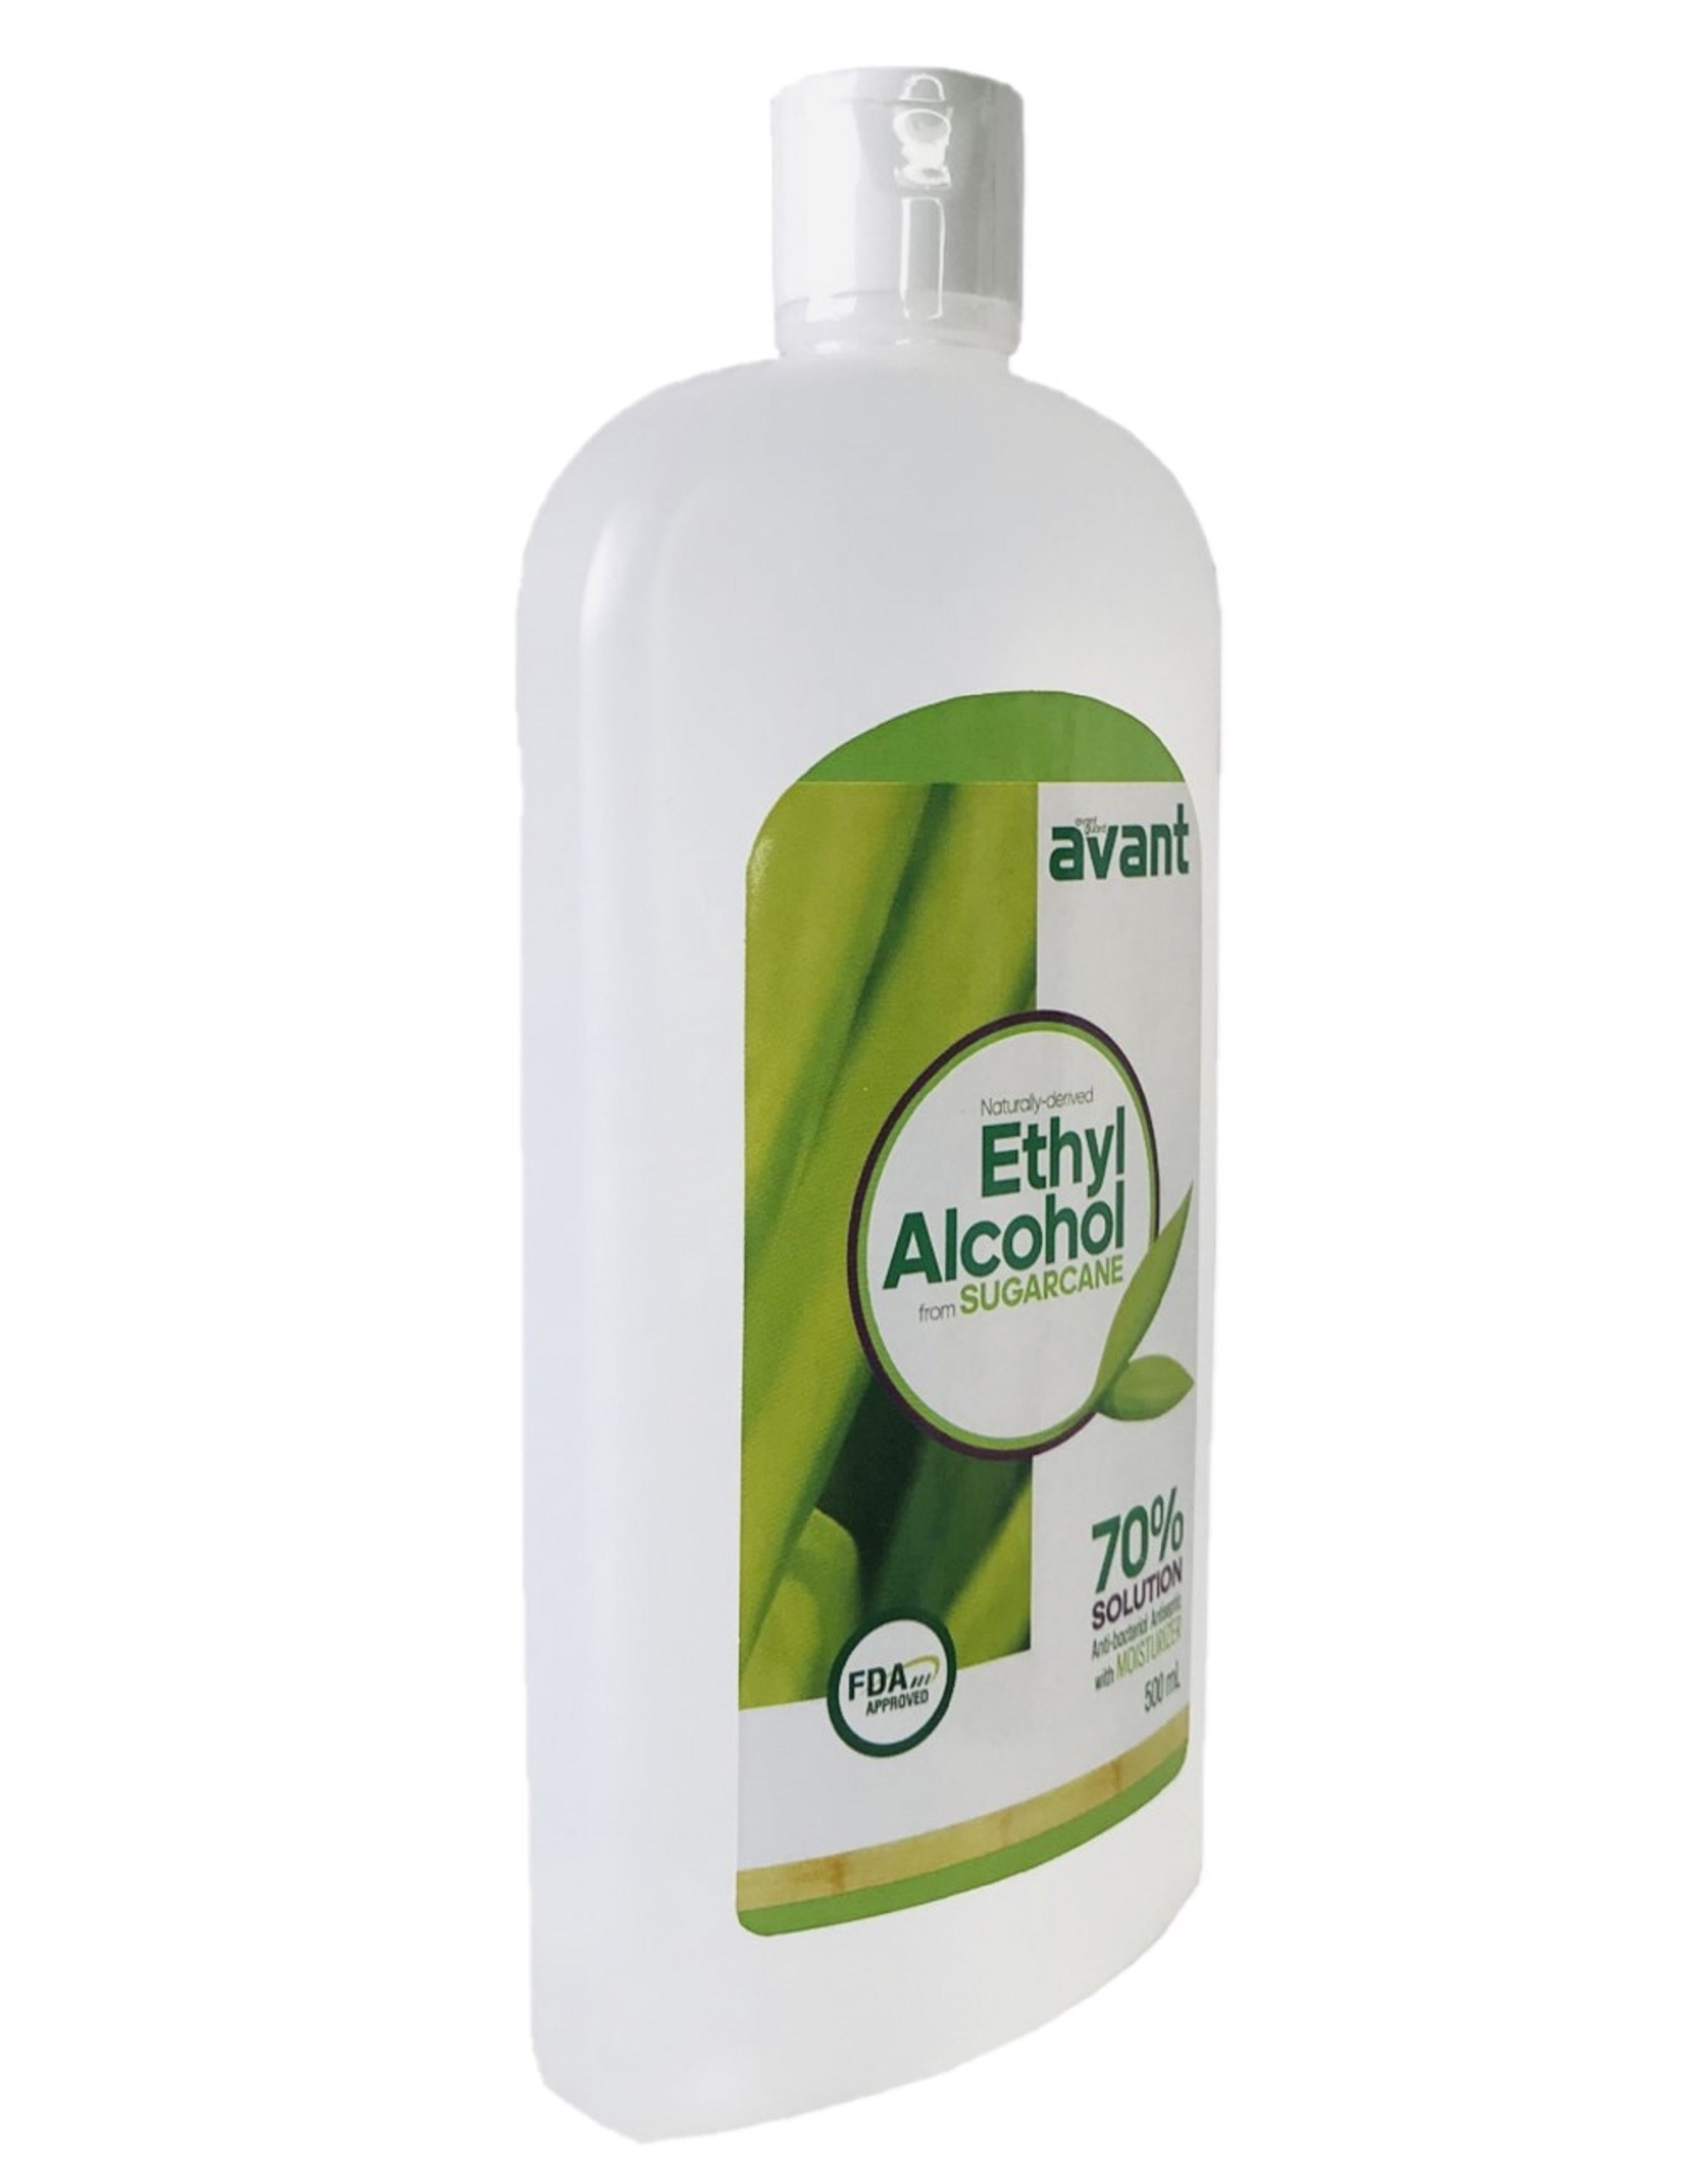 AVANTEthyl Alcohol 70% Solution 500ml,Alcohol and Disinfectant